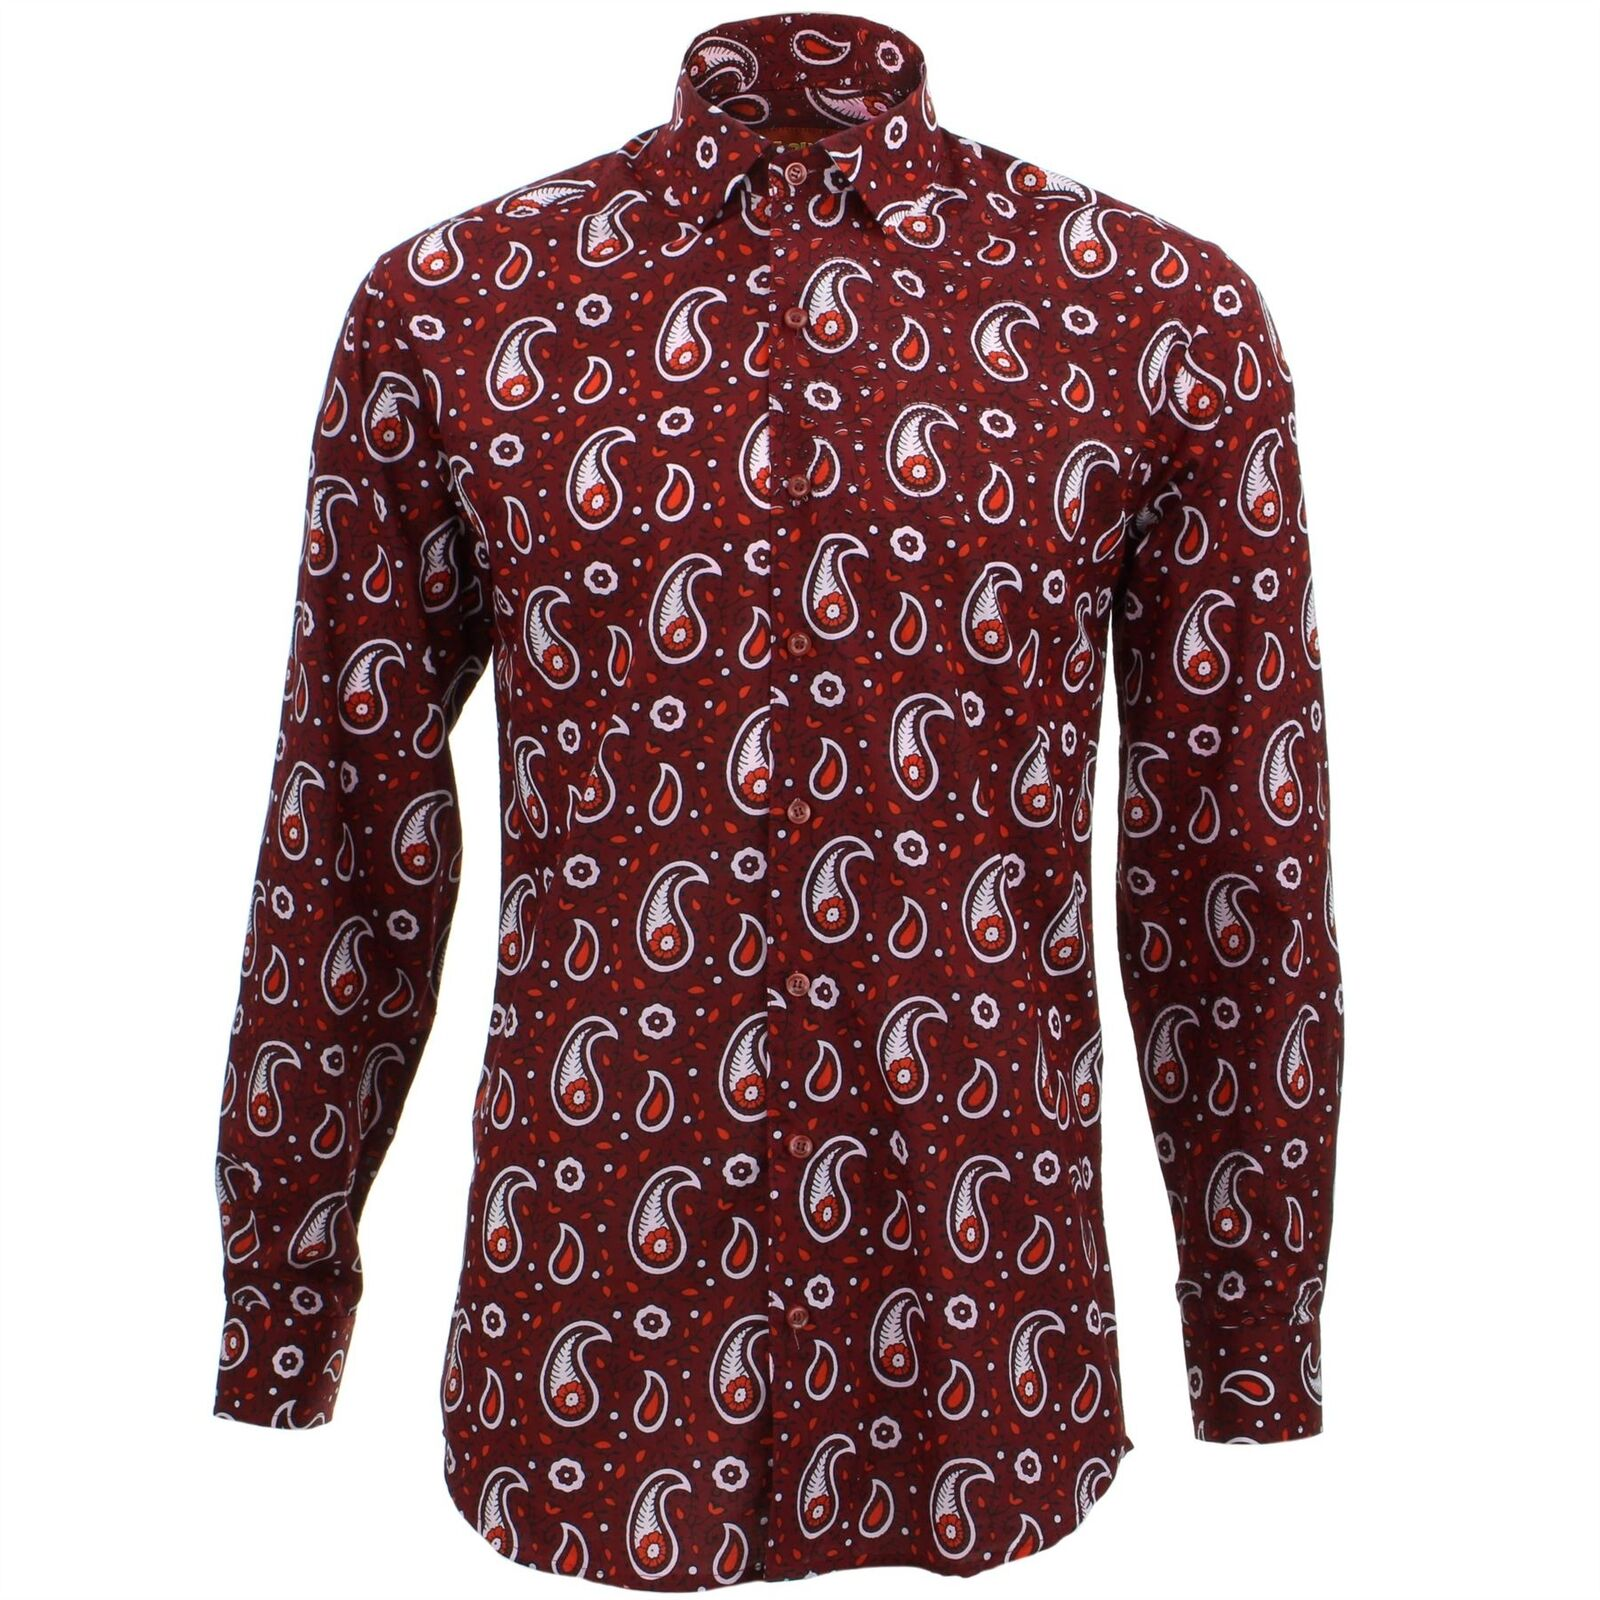 Mens Shirt Loud Originals TAILORED FIT Paisley Maroon Retro Psychedelic Fancy